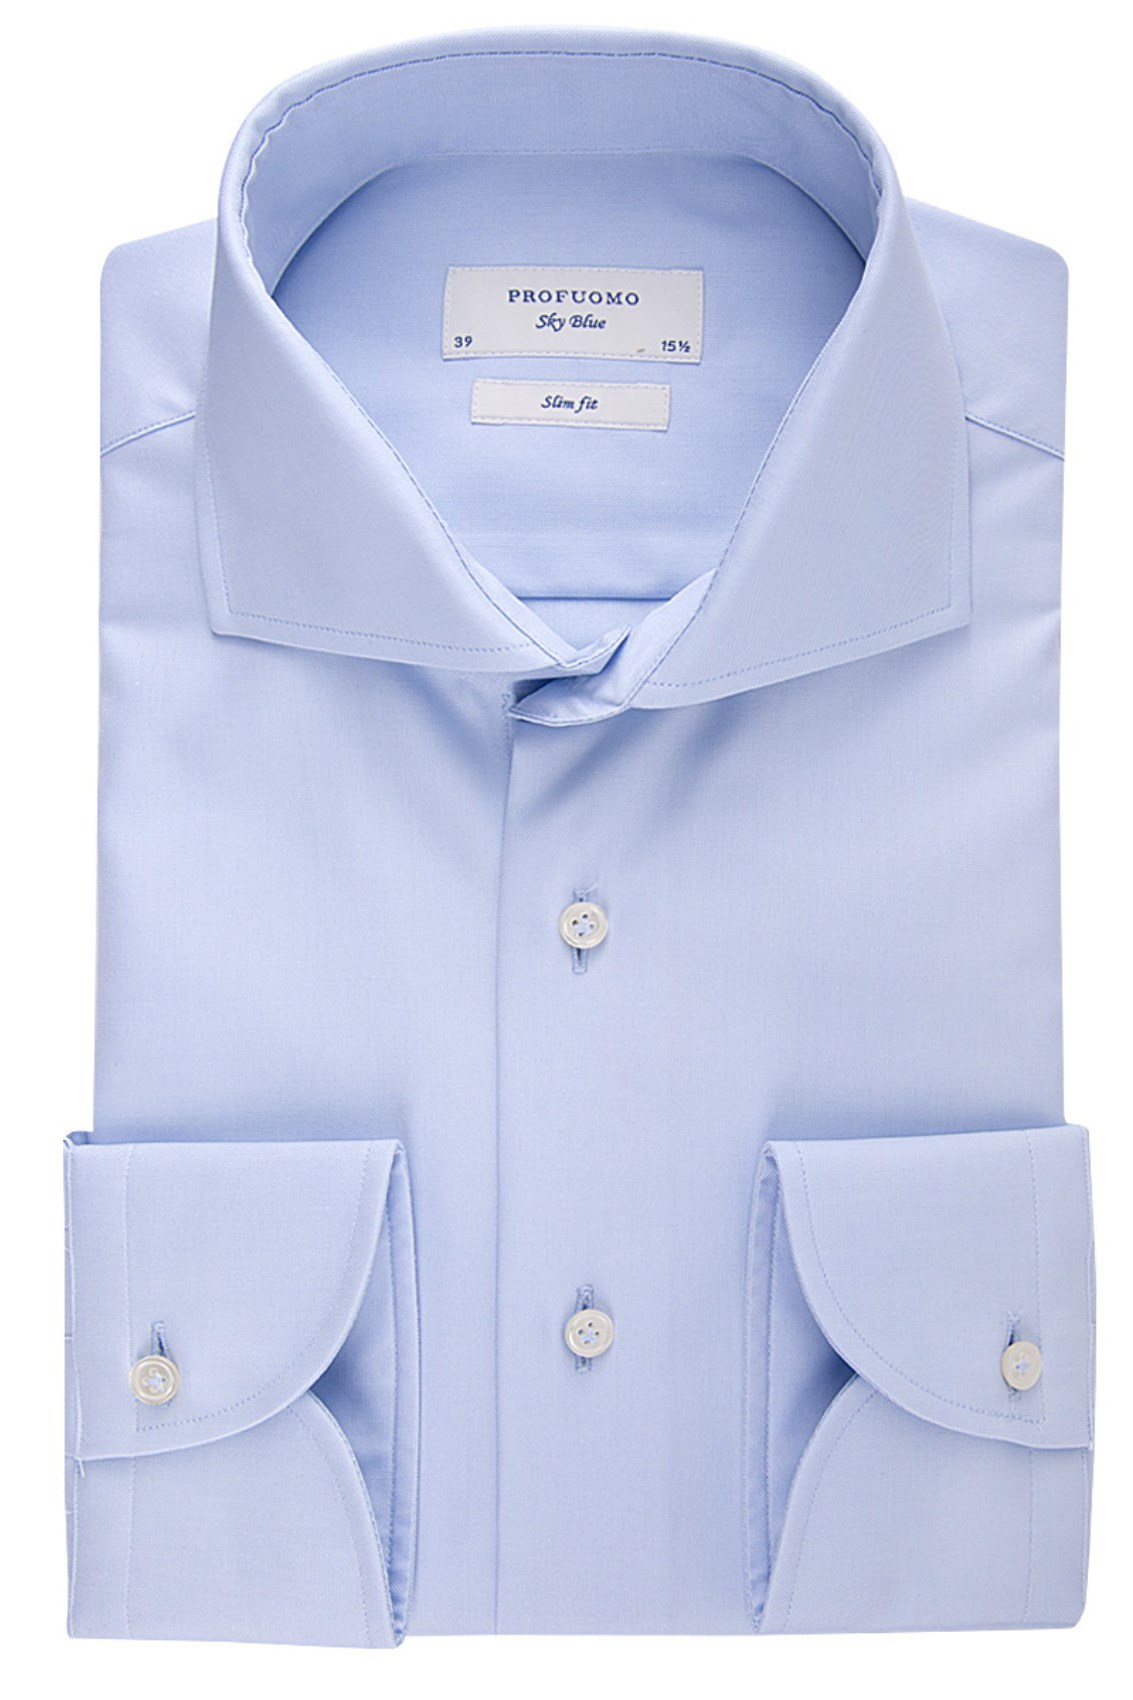 SALE Profuomo overhemd slim fit sky blue two ply